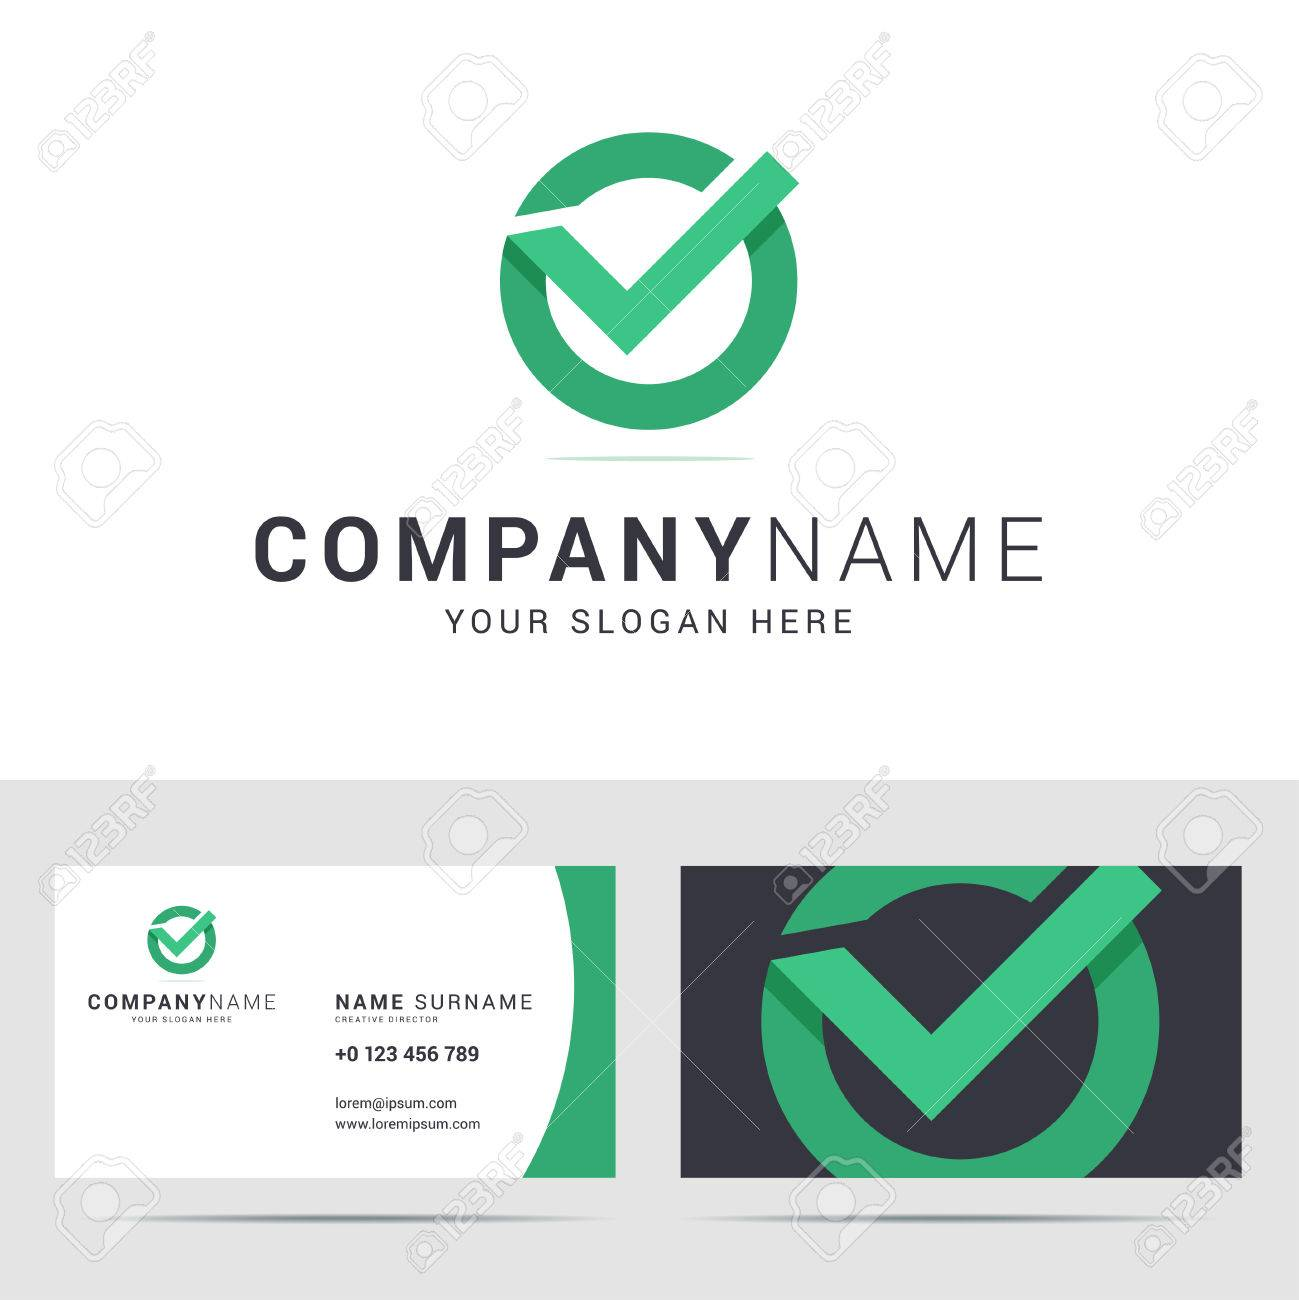 Business card template in flat style check mark icon checkbox business card template in flat style check mark icon checkbox sign origami style jeuxipadfo Gallery